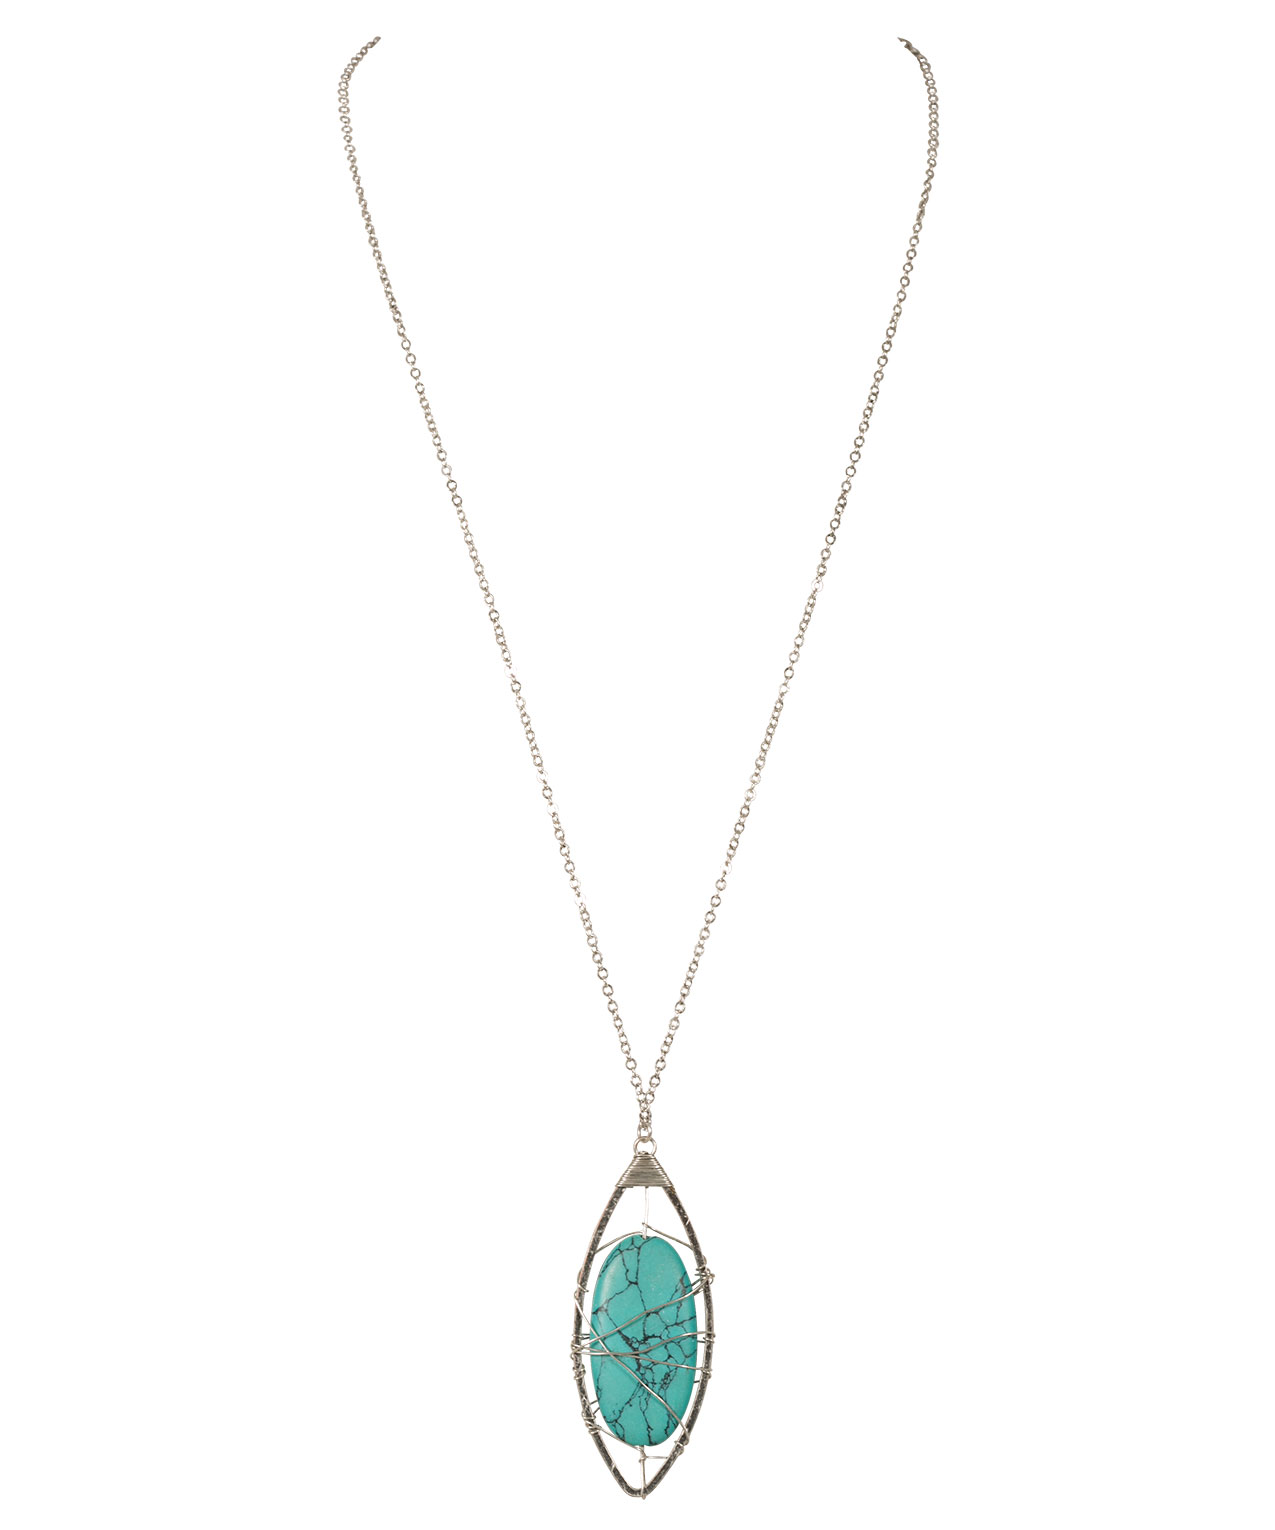 pendant necklaces vintage stone choker rough for chain peacock in new short women necklace female from decoration turquoise item clavicle